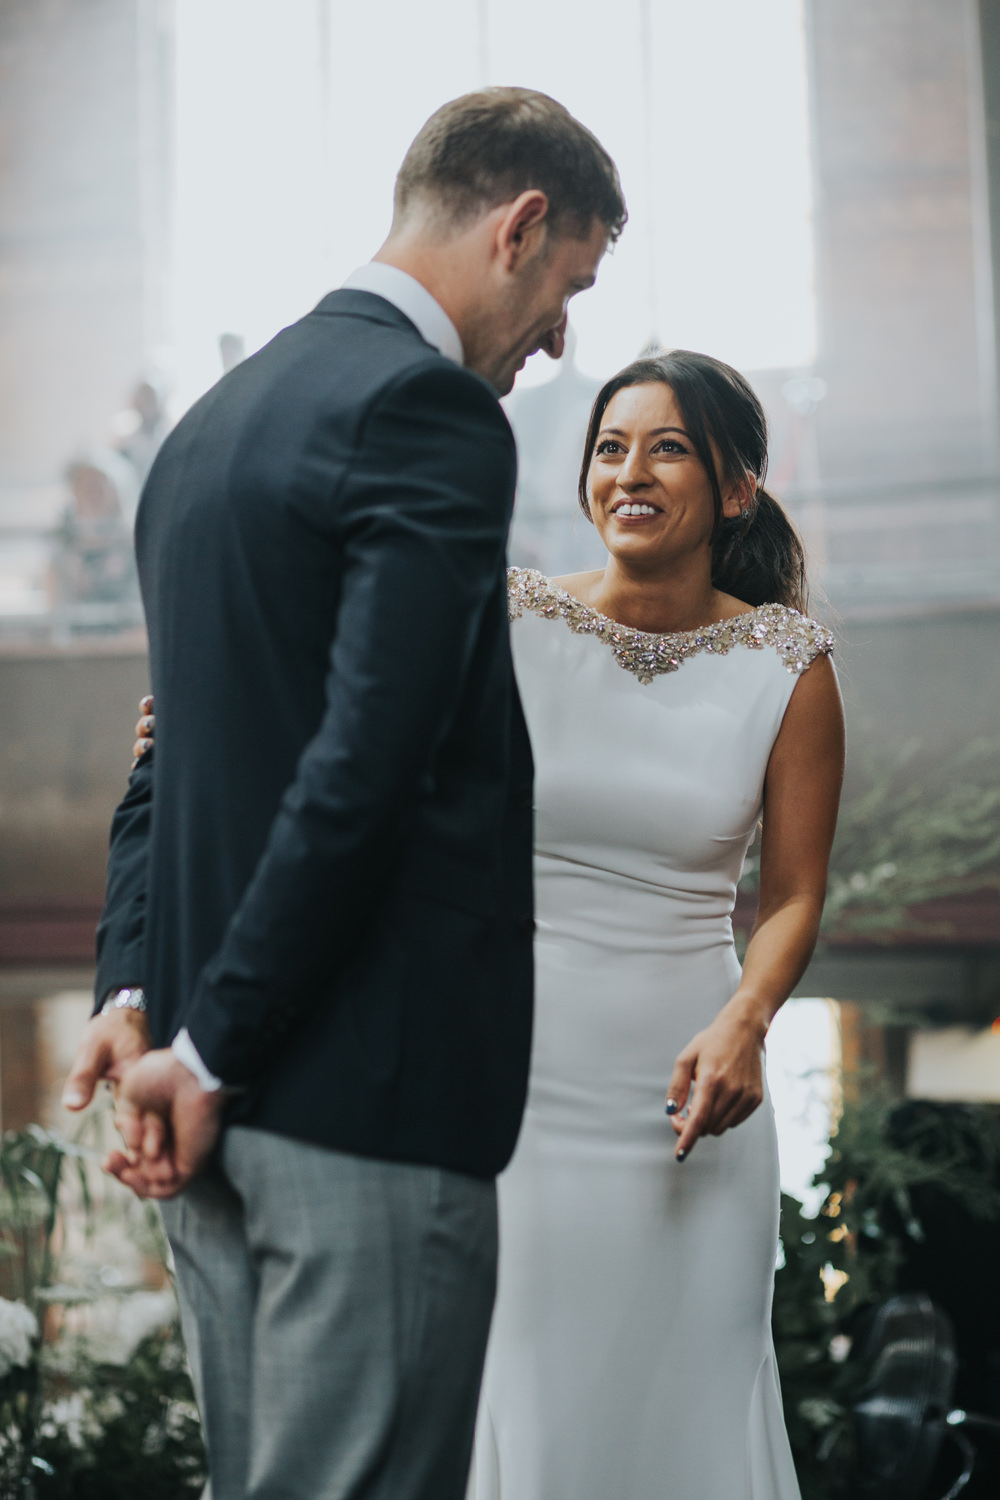 Pronovias Dress Gown Fit and Flare Embellished Sparkle Long Train Mismatched Suit Groom Albert Hall Manchester Wedding Katie Dervin Photography